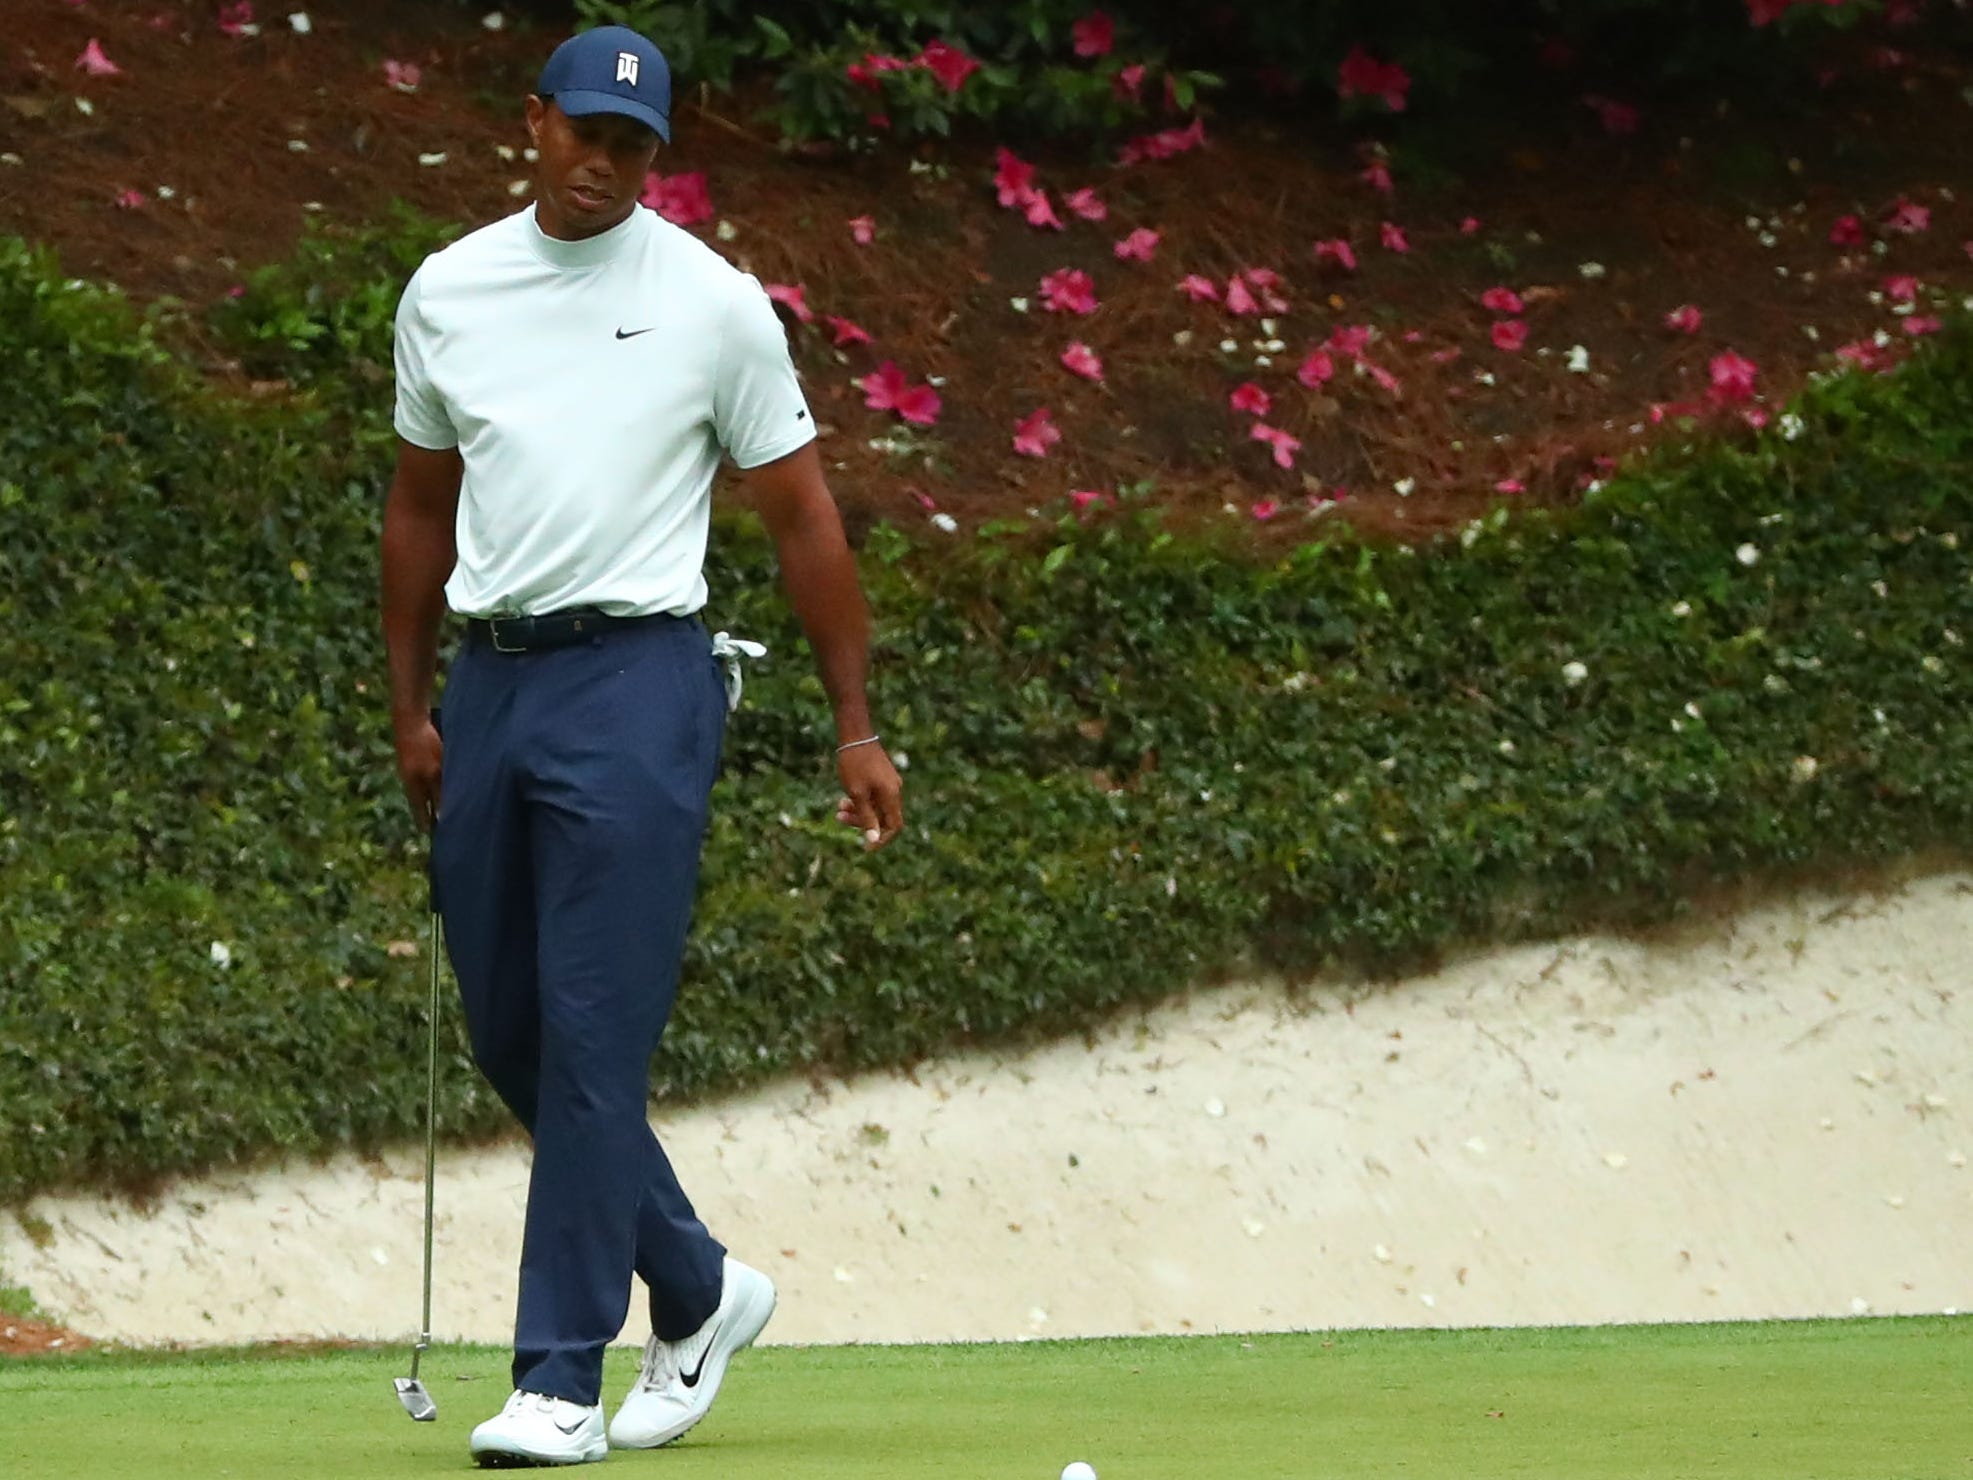 Apr 12, 2019; Augusta, GA, USA; Tiger Woods reacts after missing a putt on the 12th green during the second round of The Masters golf tournament at Augusta National Golf Club. Mandatory Credit: Rob Schumacher-USA TODAY Sports